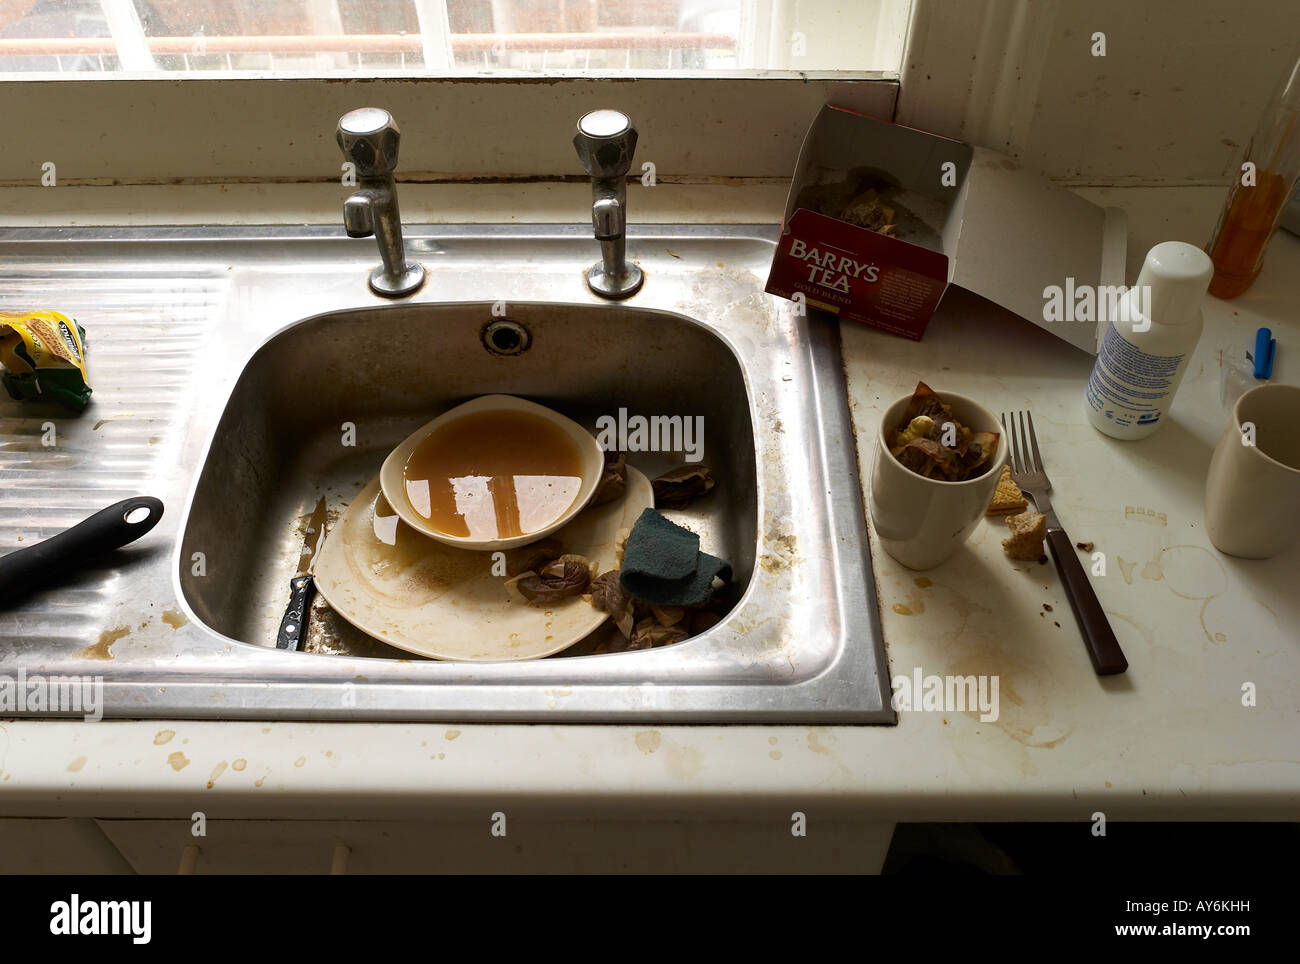 A dirty kitchen sink in an old man s flat Stock Photo: 17009980 - Alamy